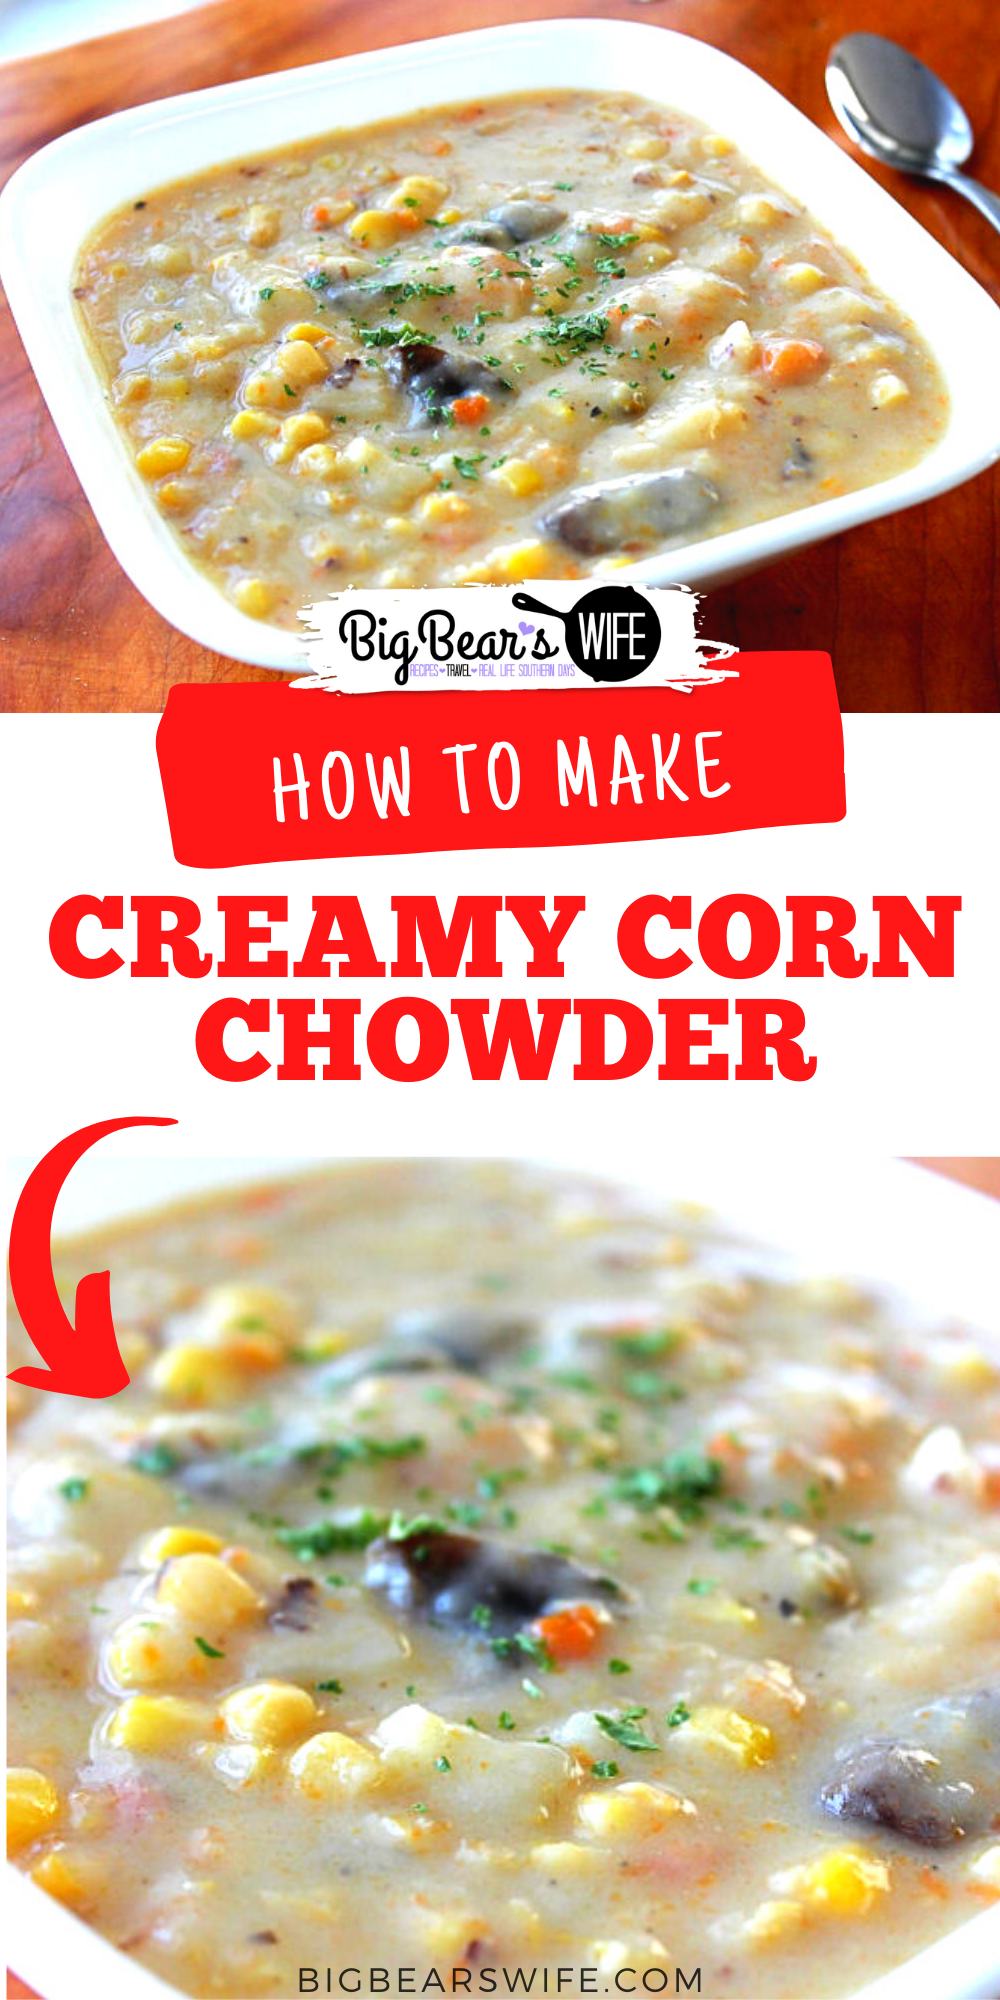 This Creamy Corn Chowder is an amazing recipe for any soup lover! It's easy to make and will warm you up on cold evenings! Perfect flavors for a perfect dinner!  via @bigbearswife